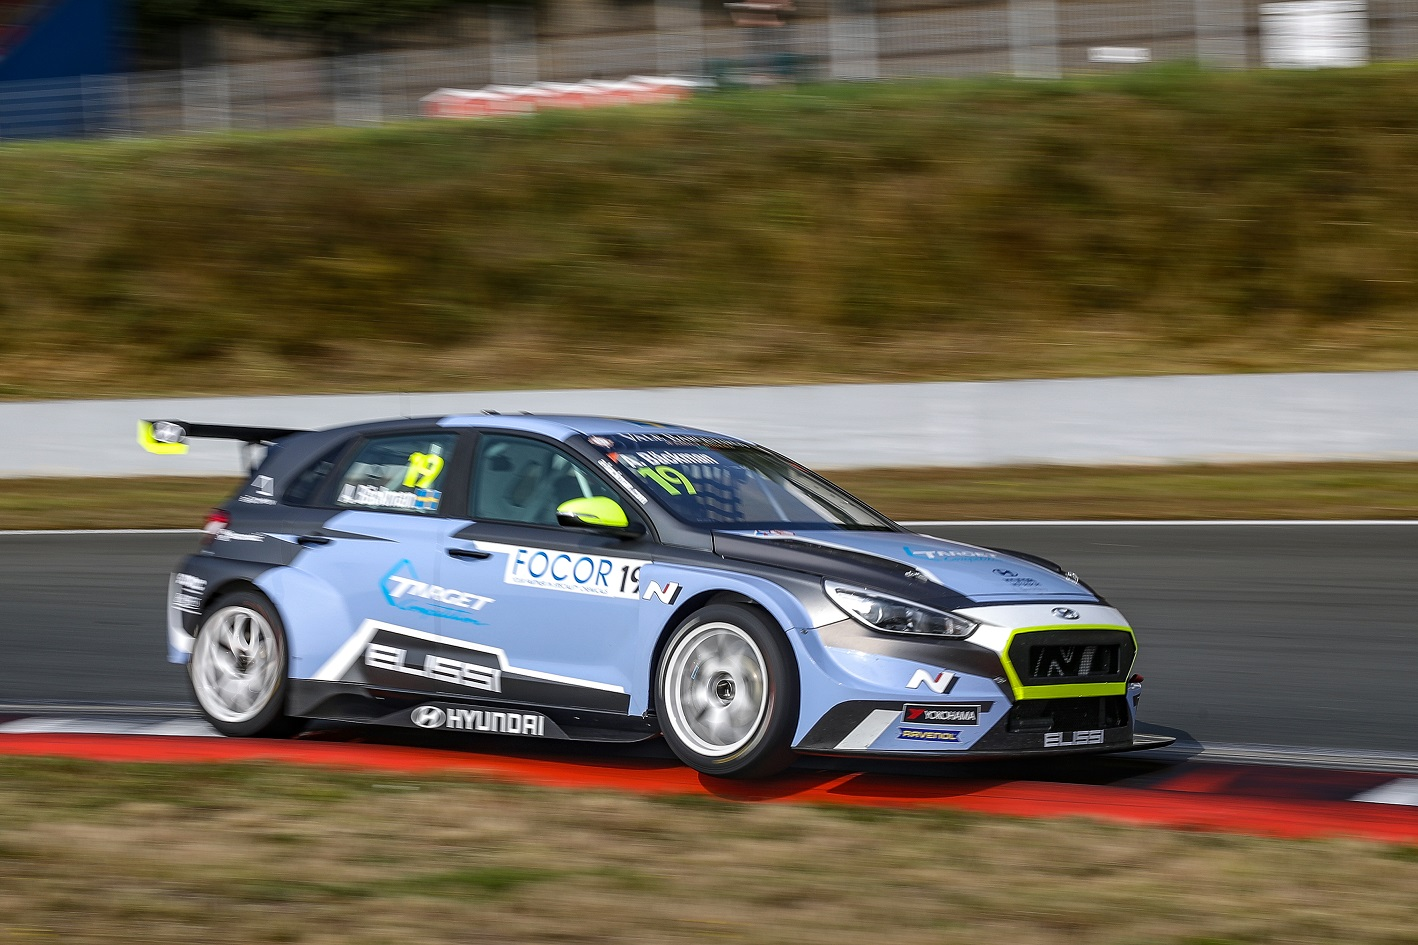 2019-2019 Oschersleben Qualifying---2019 TCR EUR Oschersleben Qualifying, 19 Andreas Backman_12